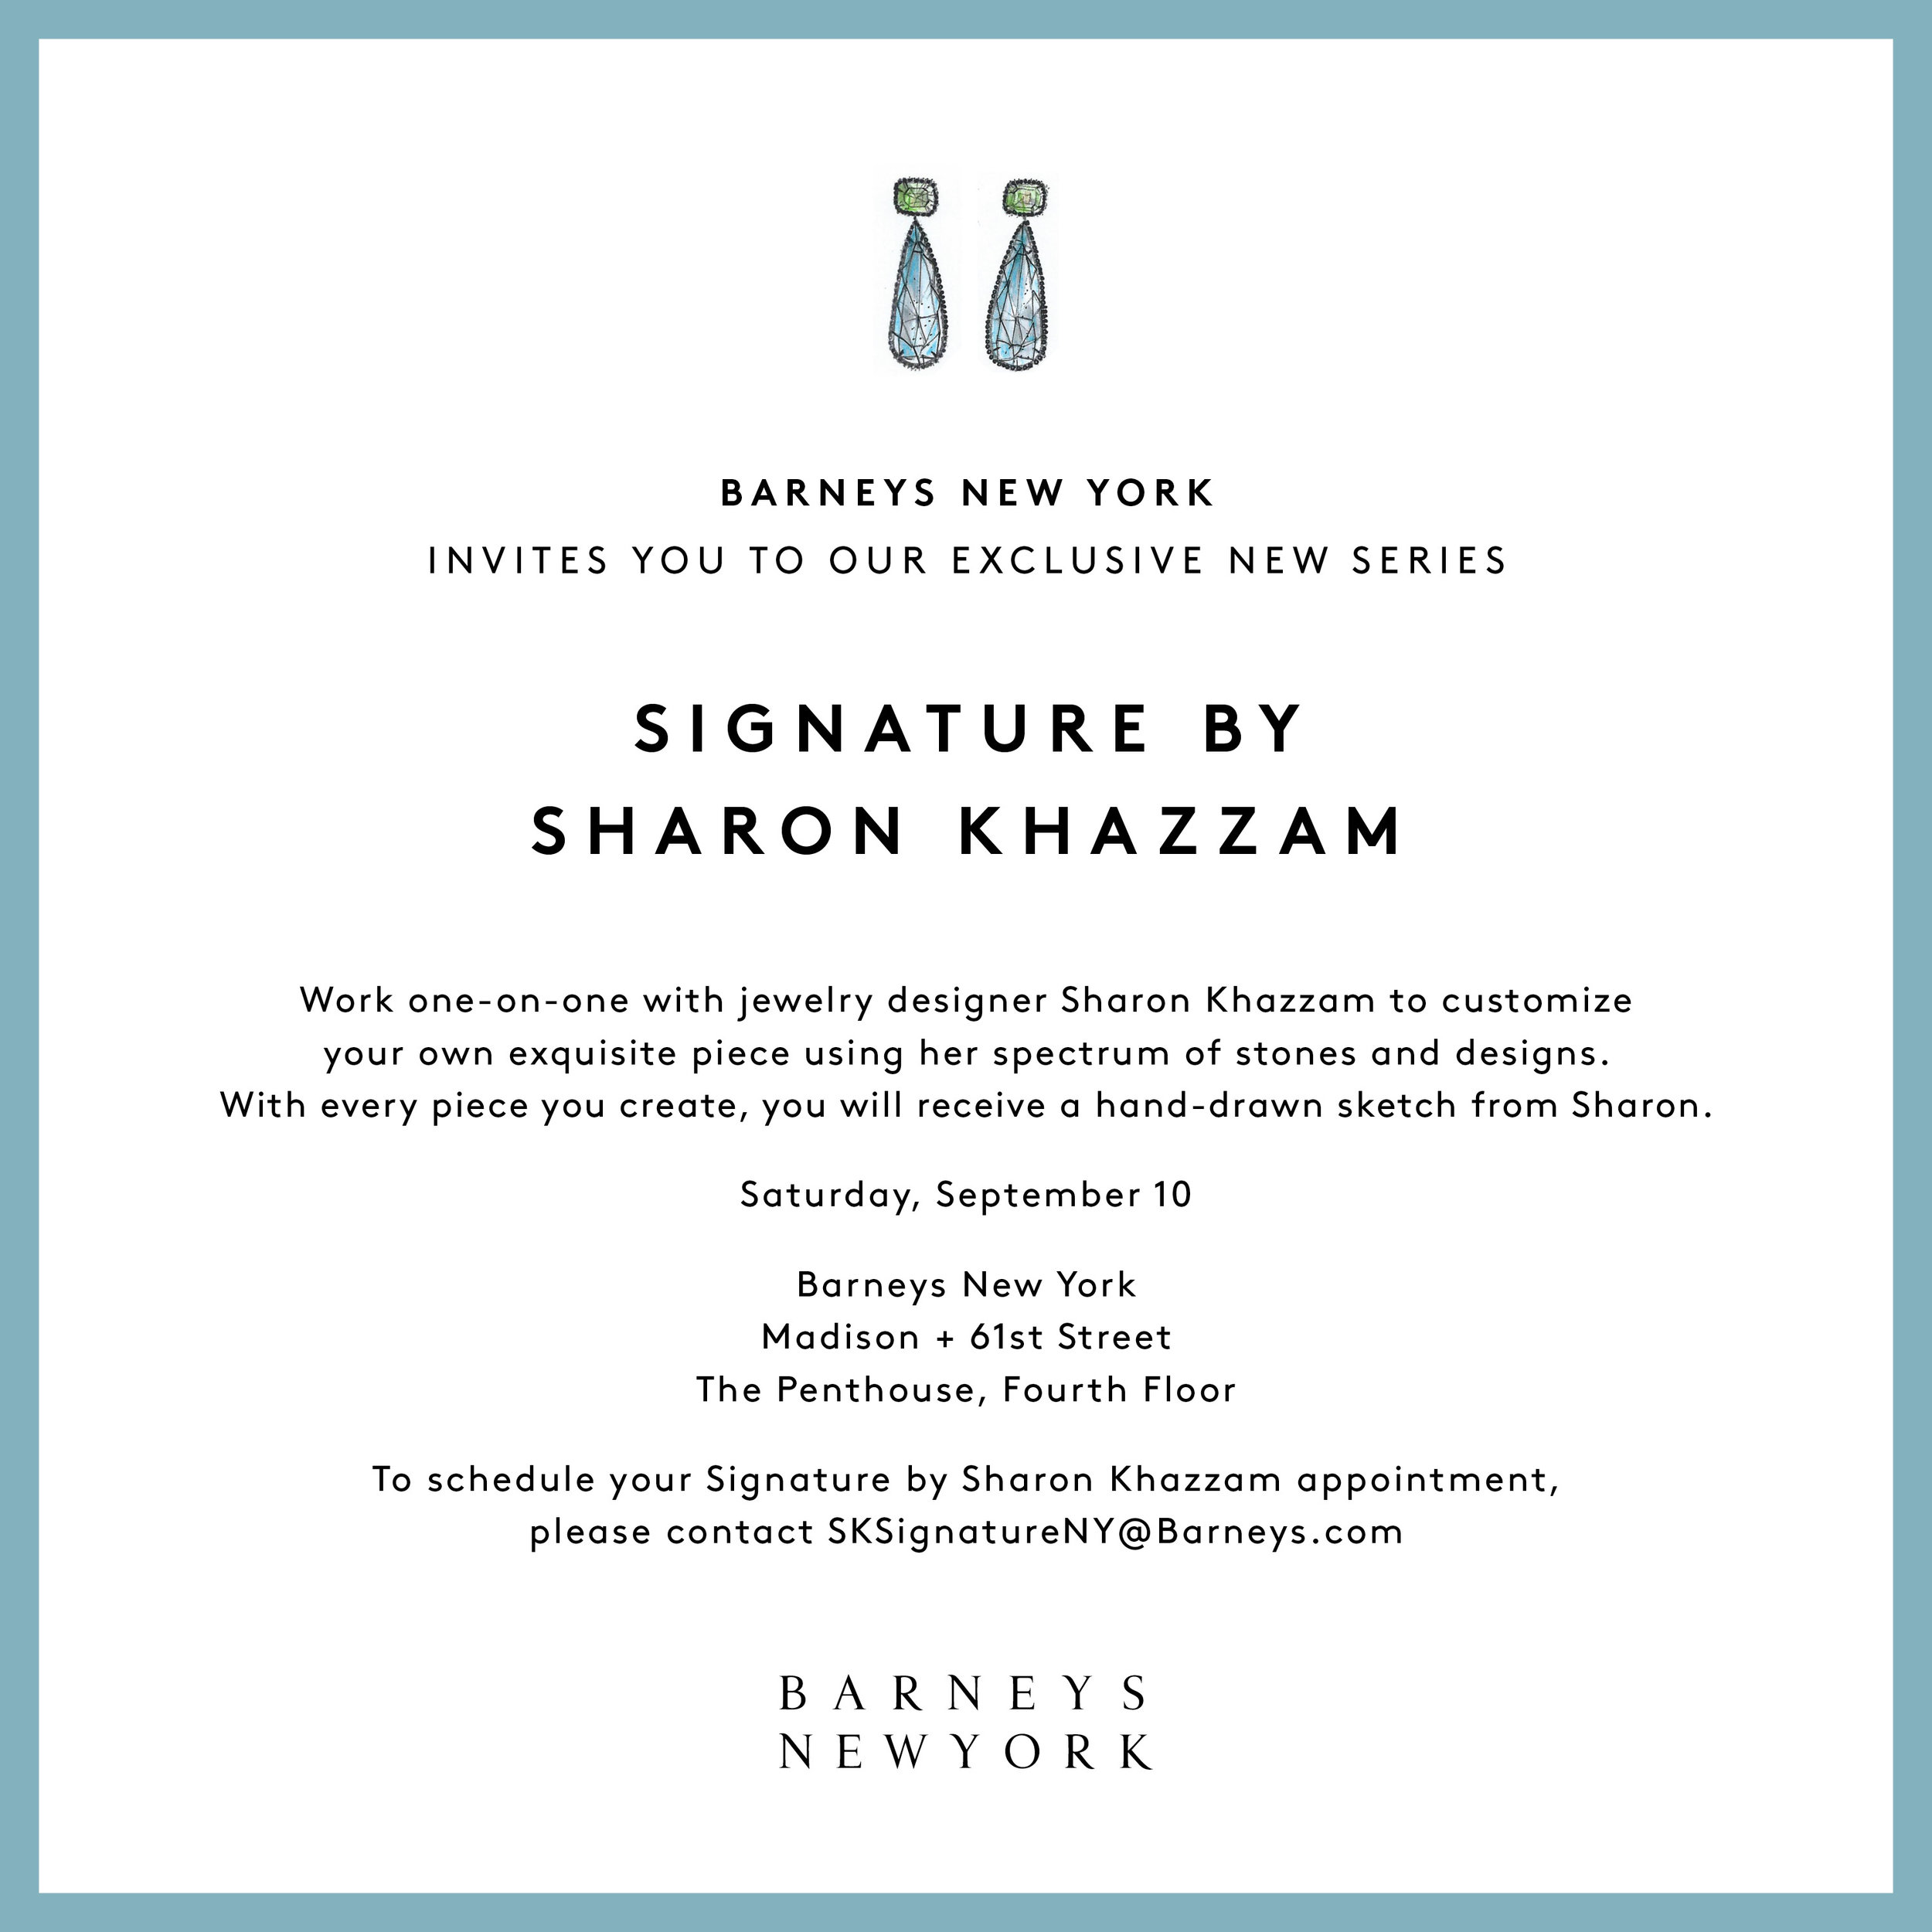 To schedule your Signature by Sharon Khazzam appointment, please contact  SKSignatureNY@Barneys.com